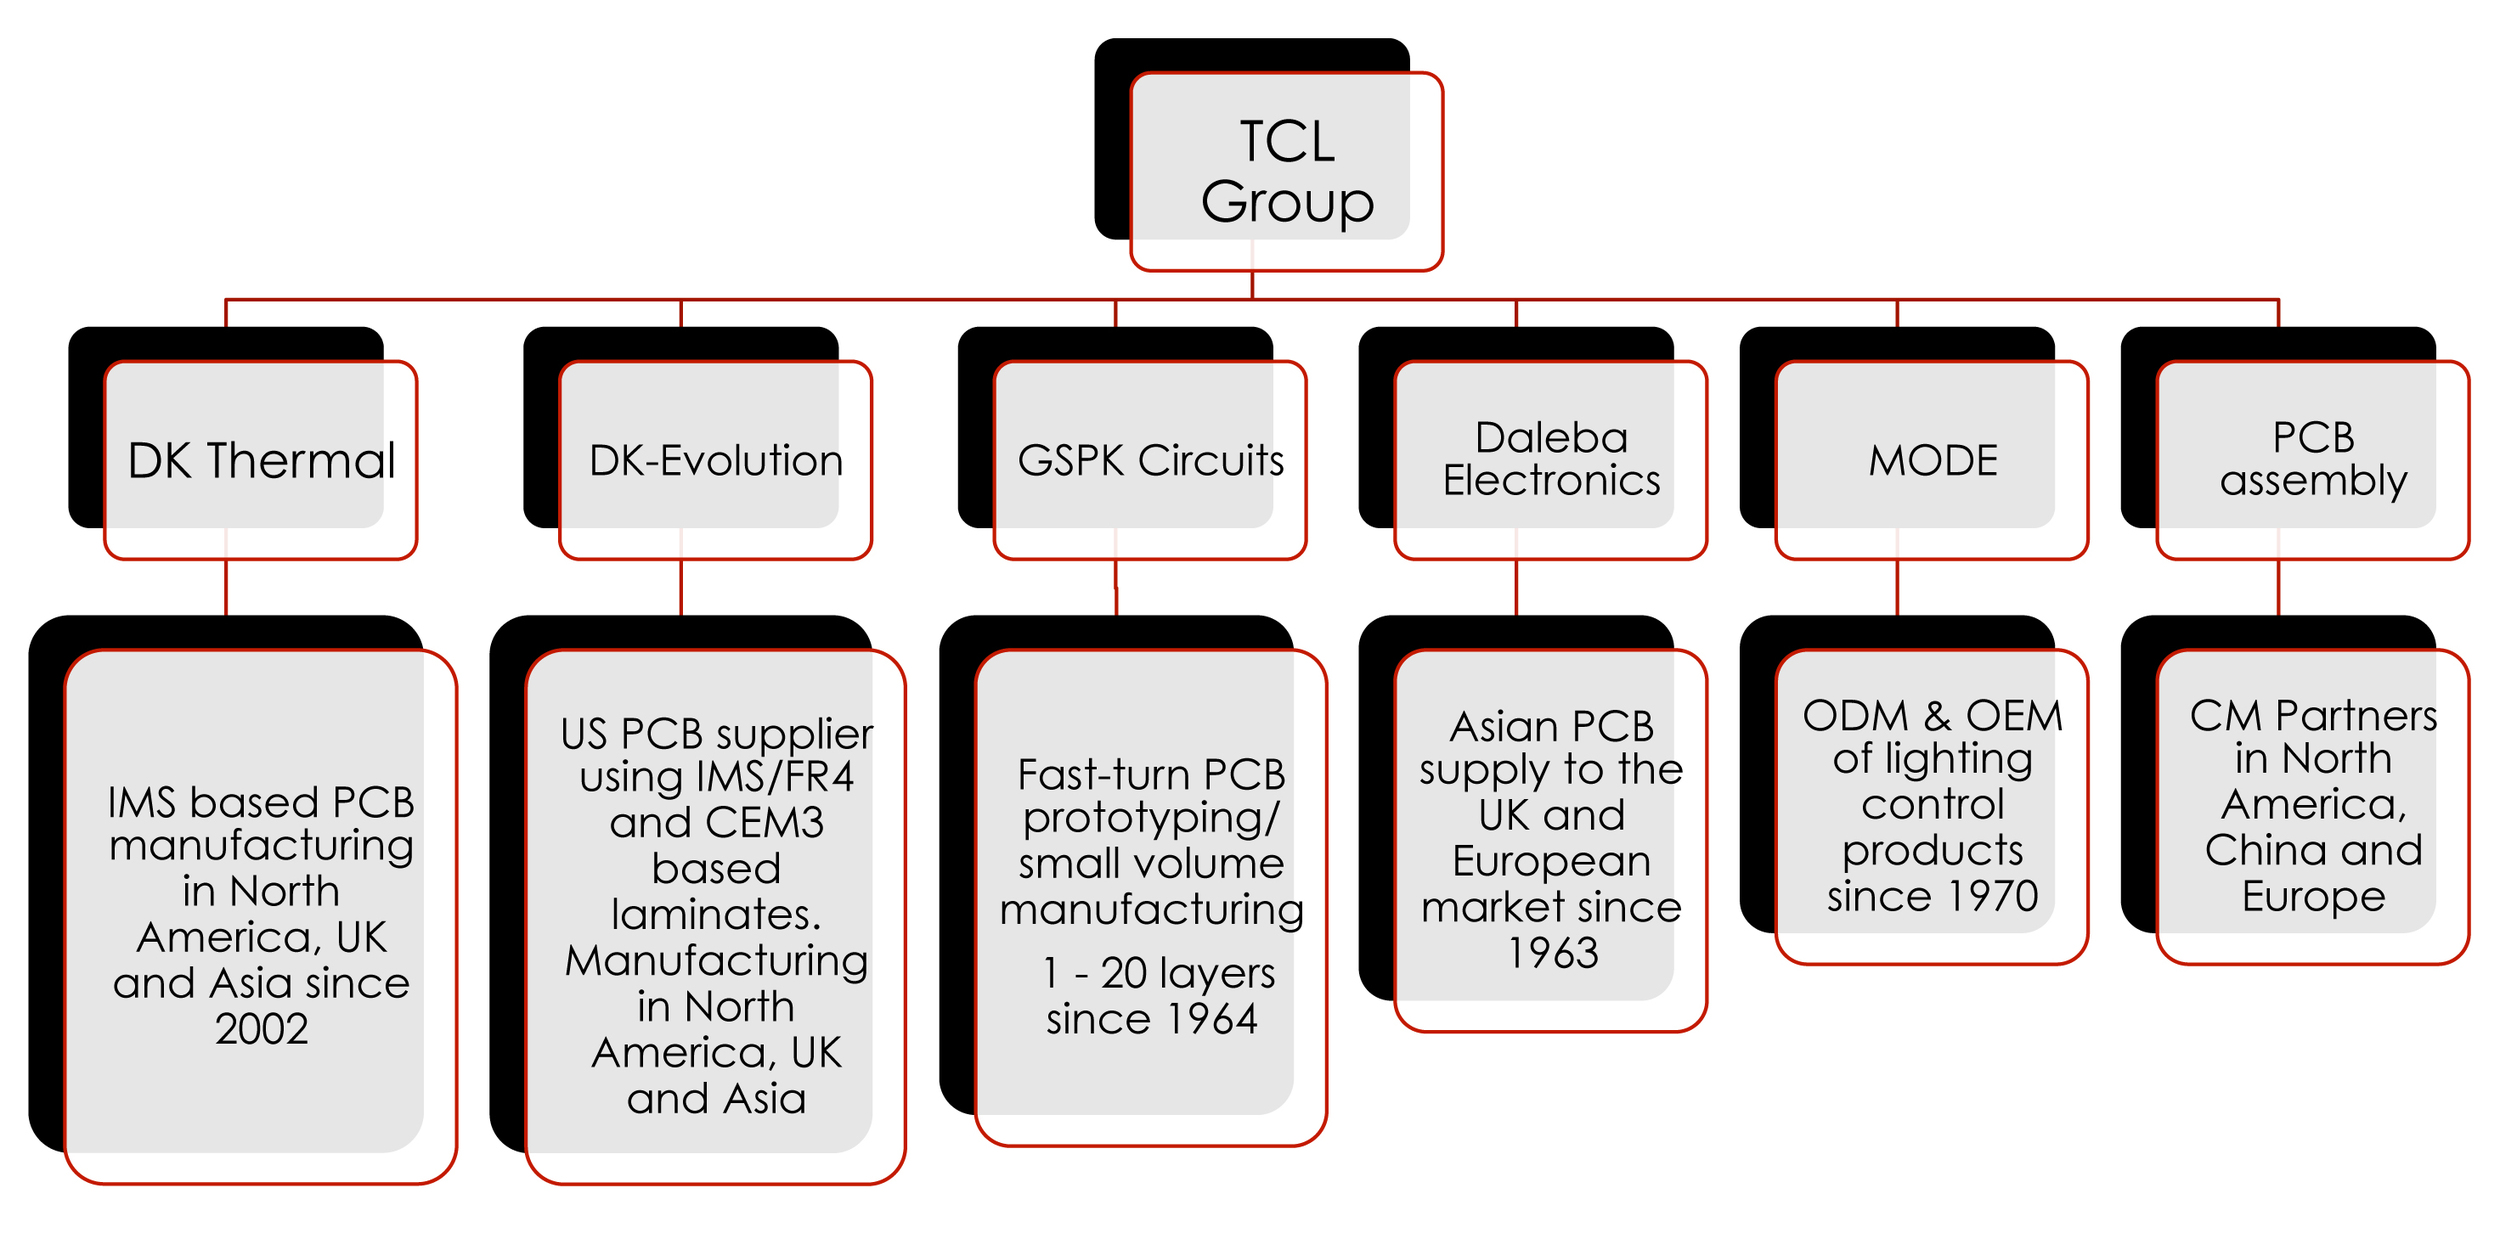 TCL_Group)